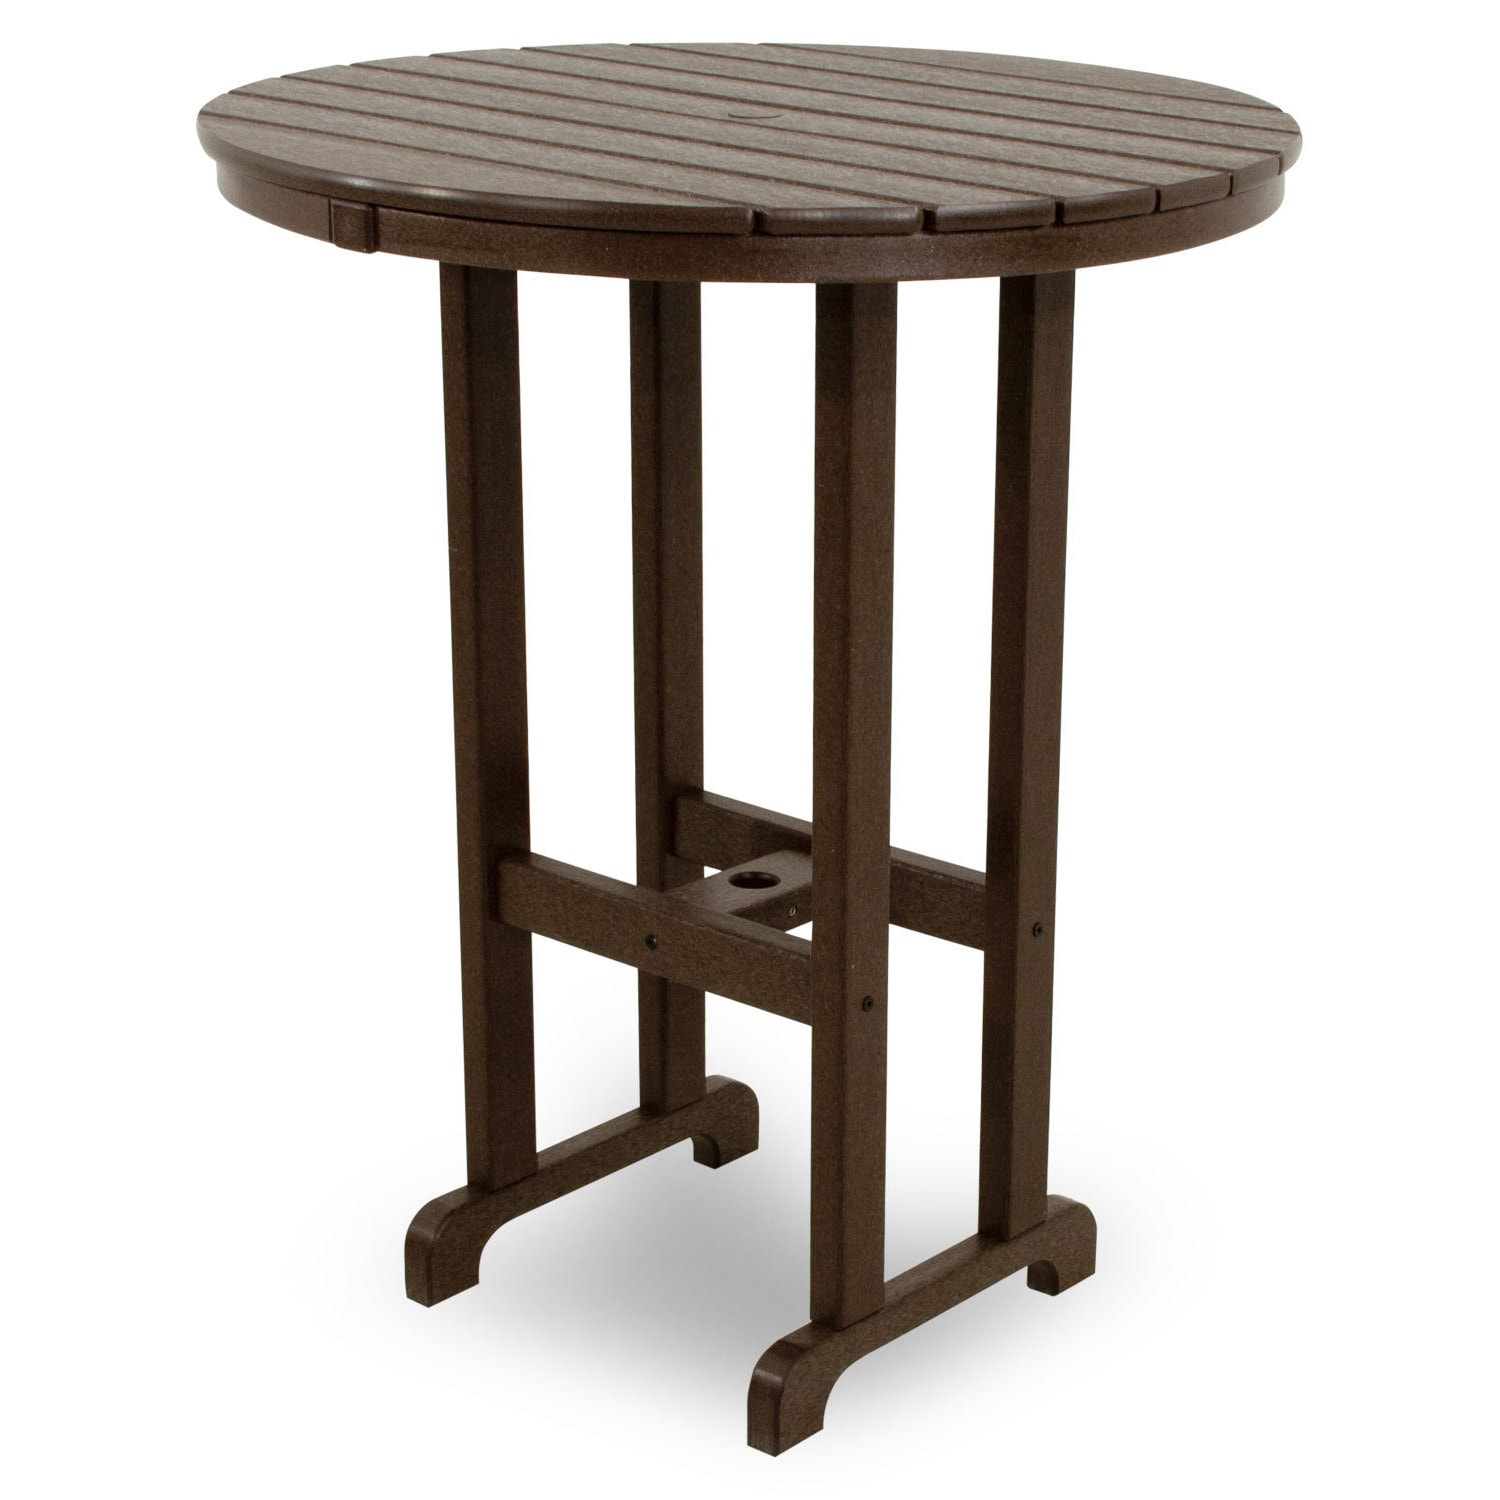 Ivy Terrace Clics Round 36 Bar Table Free Shipping Today 9985282